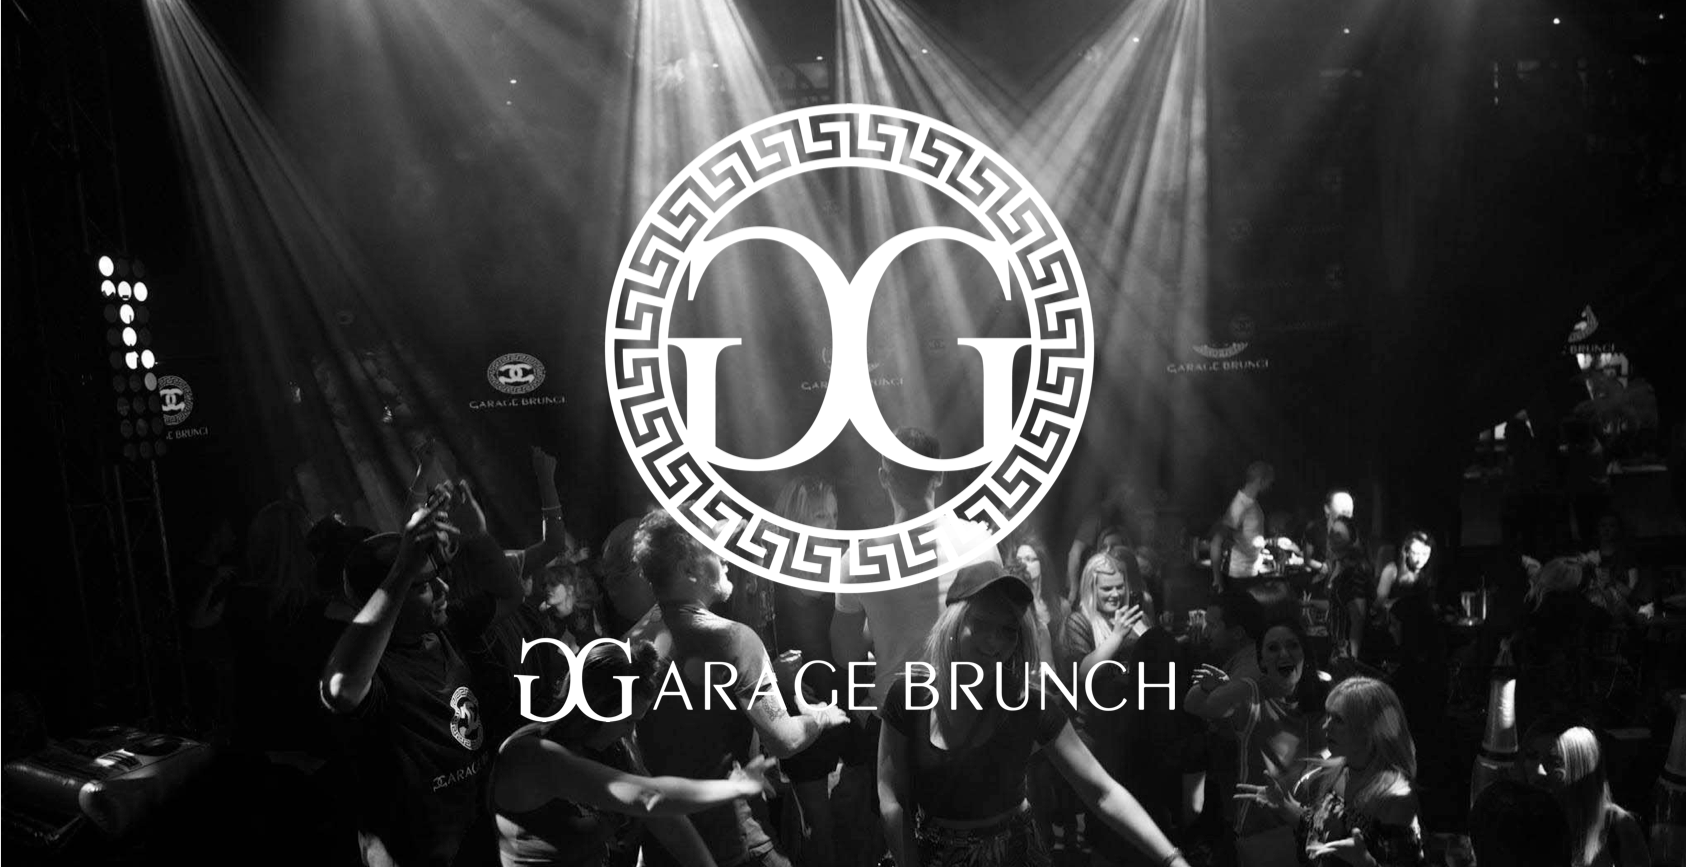 Garage Brunch 19th October - SOUNDCLASH SPECIAL